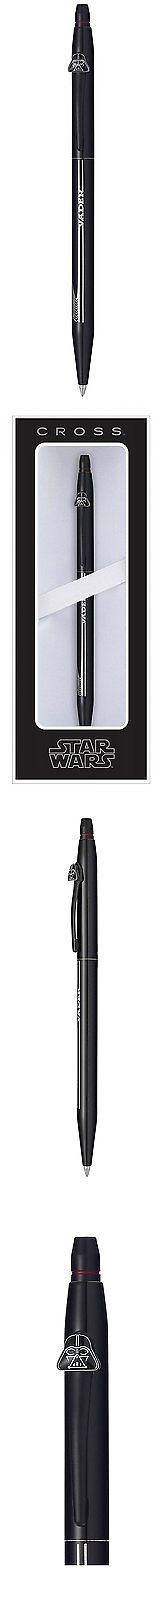 Pens and Pencils 102953: Cross Star Wars, Darth Vader Click Gel Ink Pen At0625sd-17 -> BUY IT NOW ONLY: $32.88 on eBay!